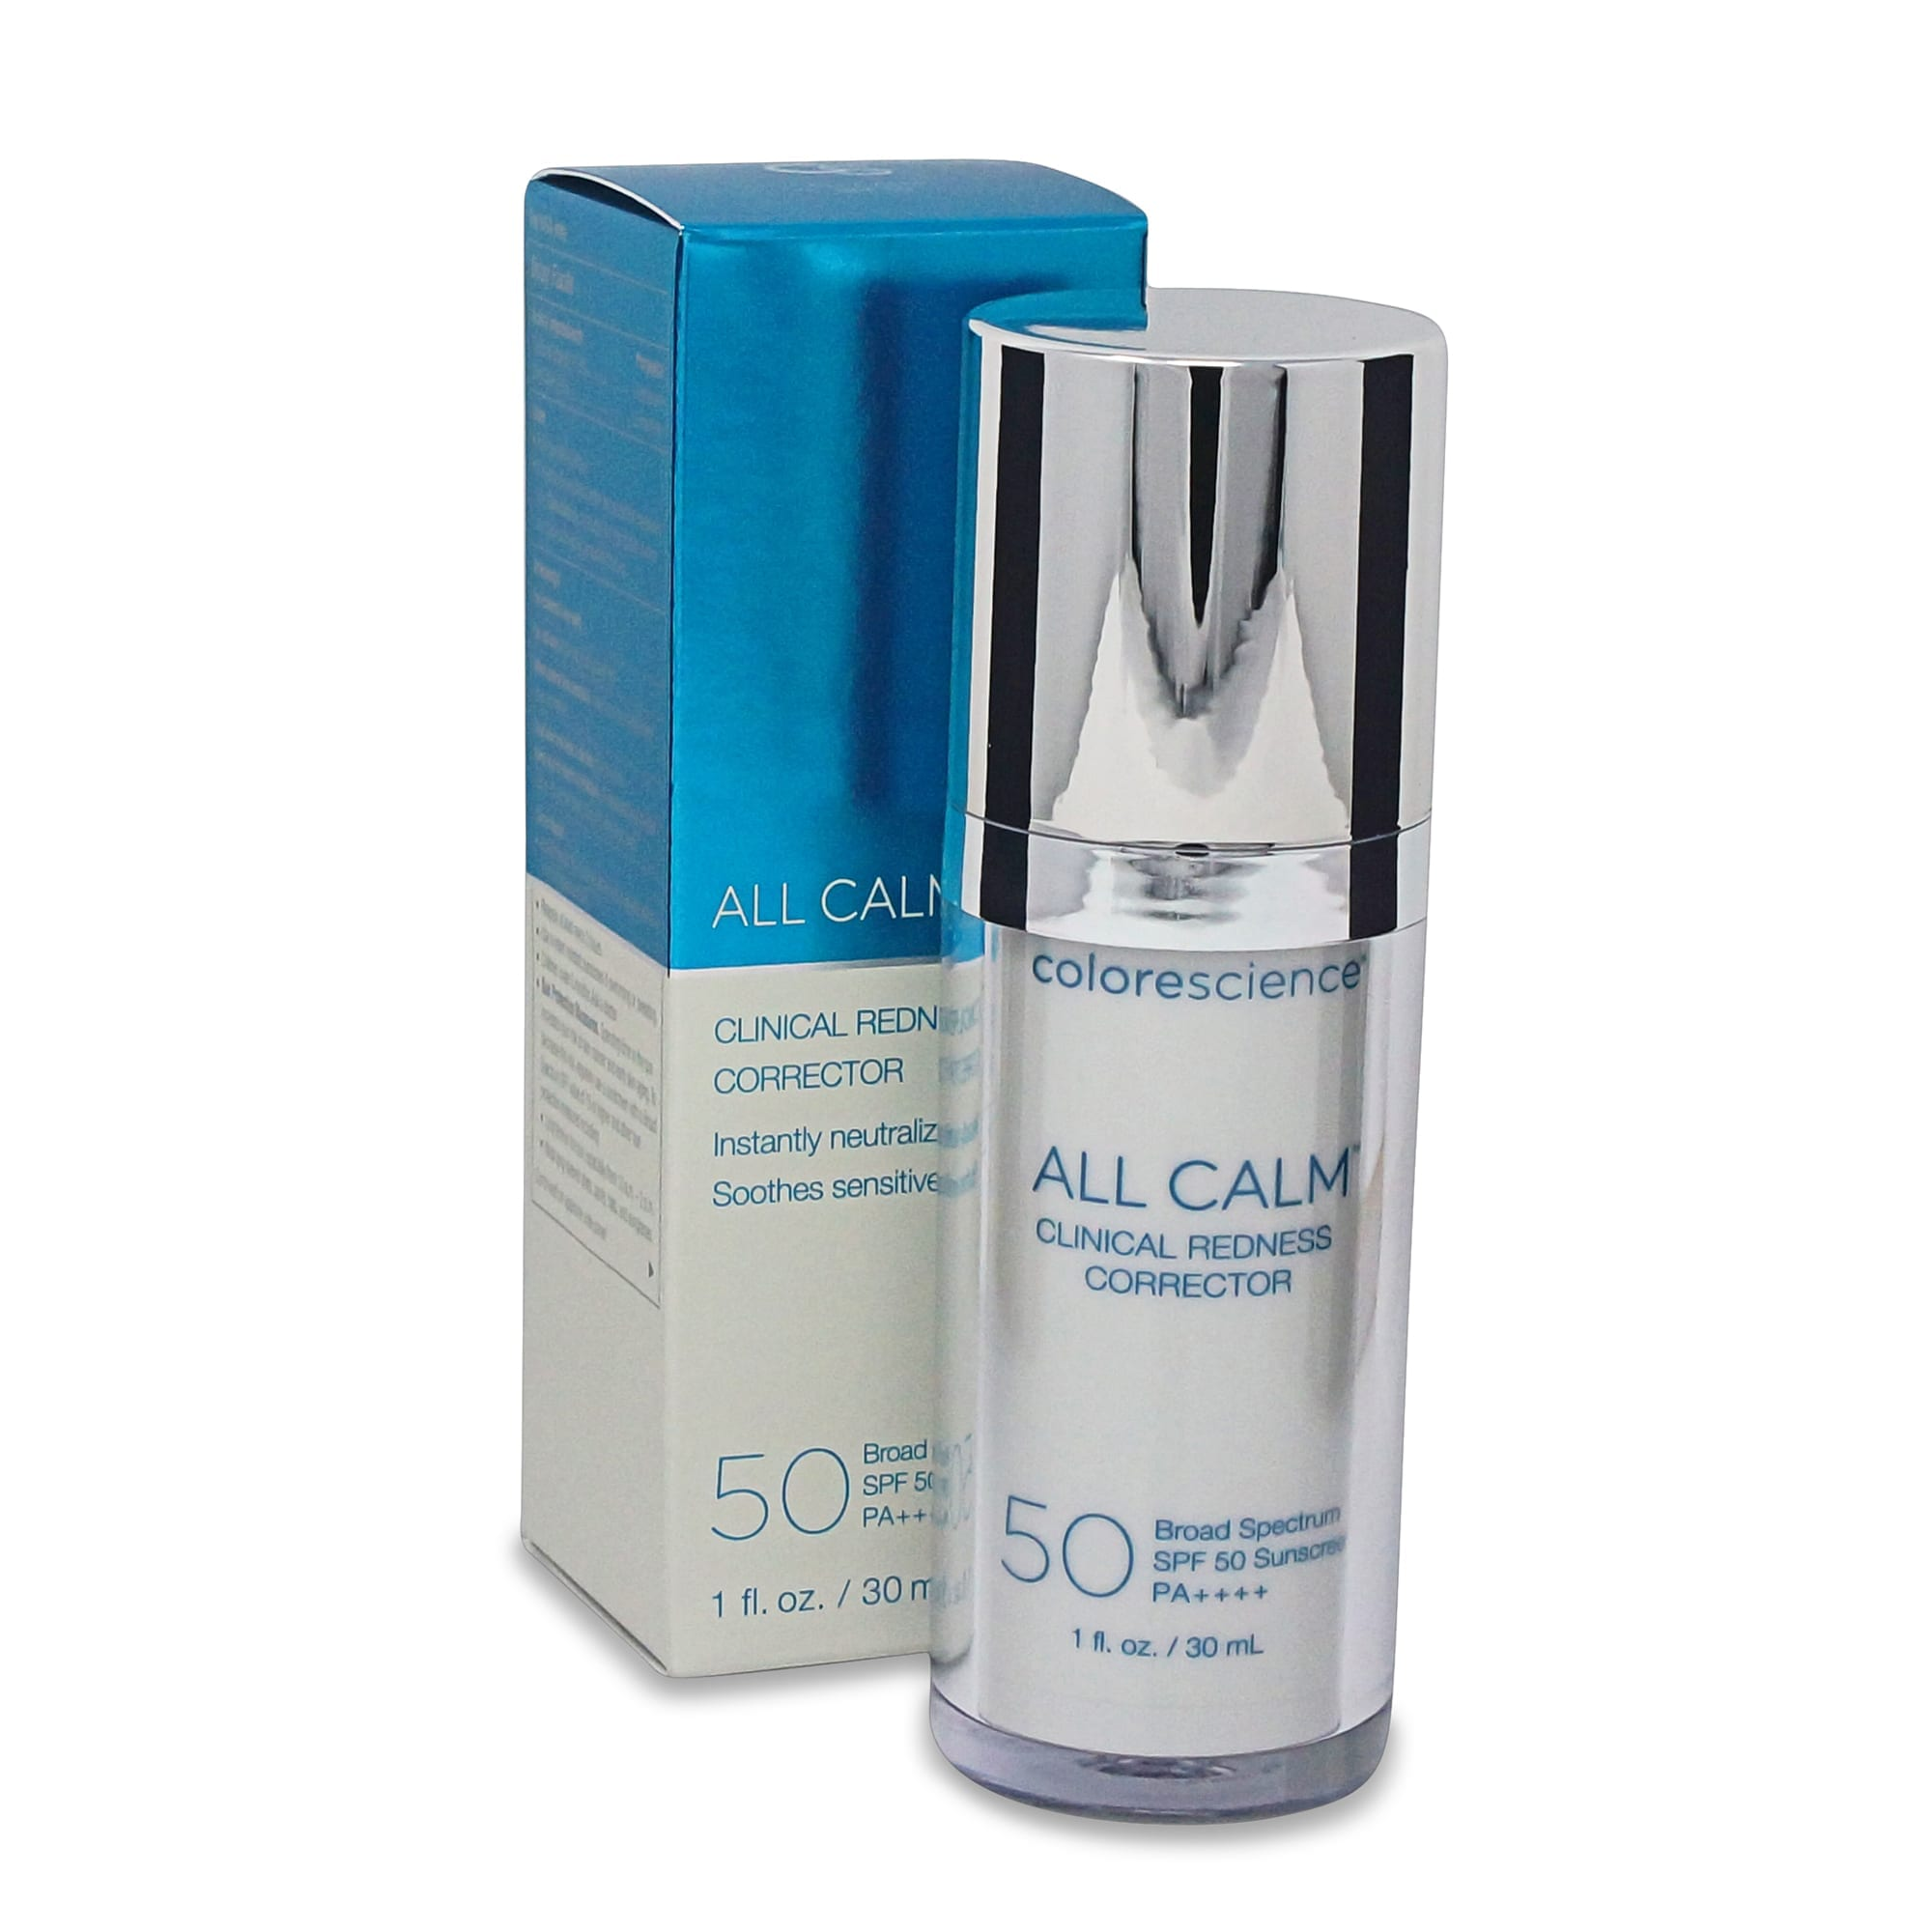 Colorescience All Calm Clinical Redness Corrector SPF 50 Broad Spectrum